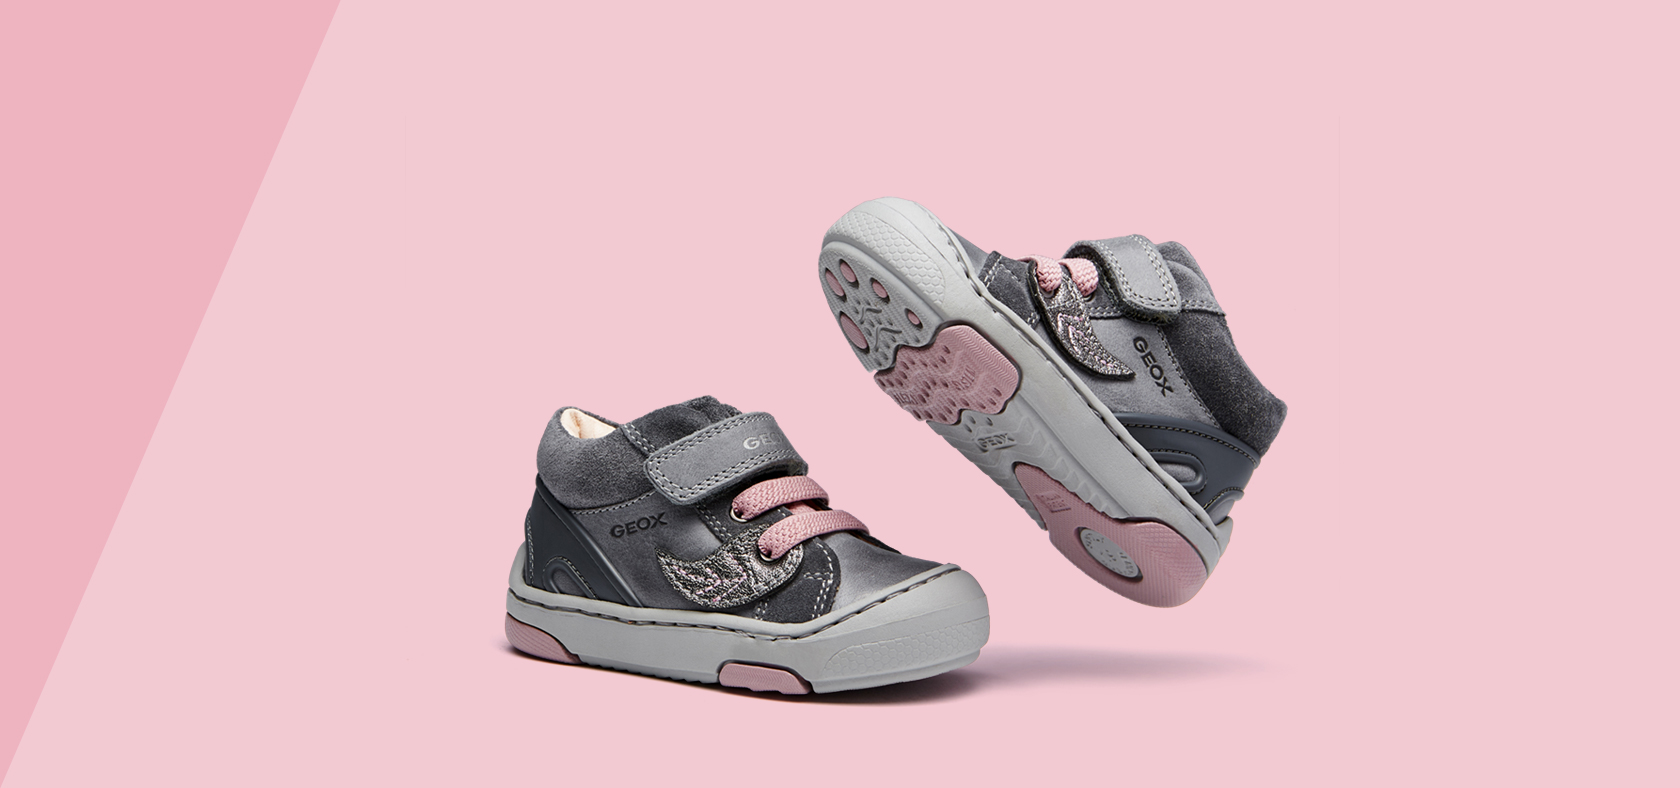 f7dc6ec3b41 Shoes First Steps for Toddlers From 9 Months | Geox